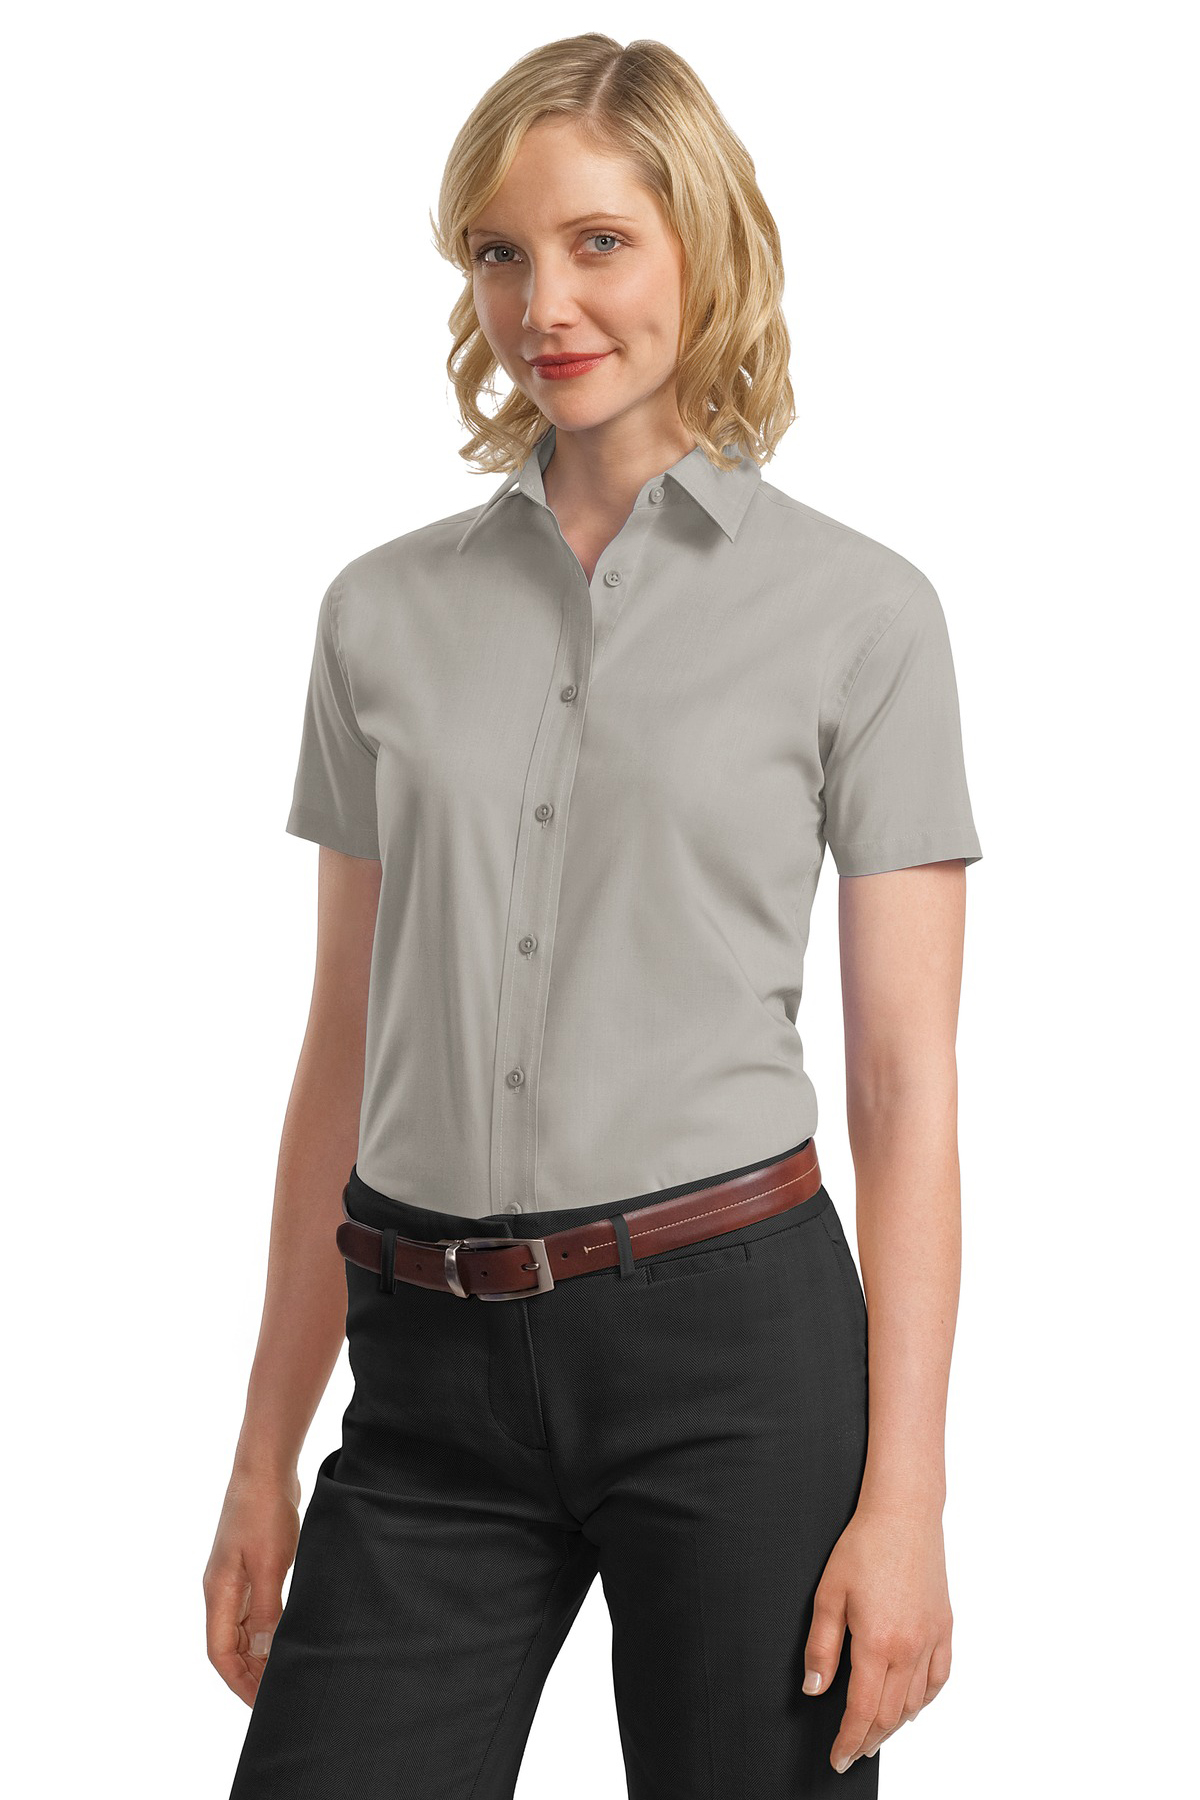 Woven-Shirts-Easy-Care-12